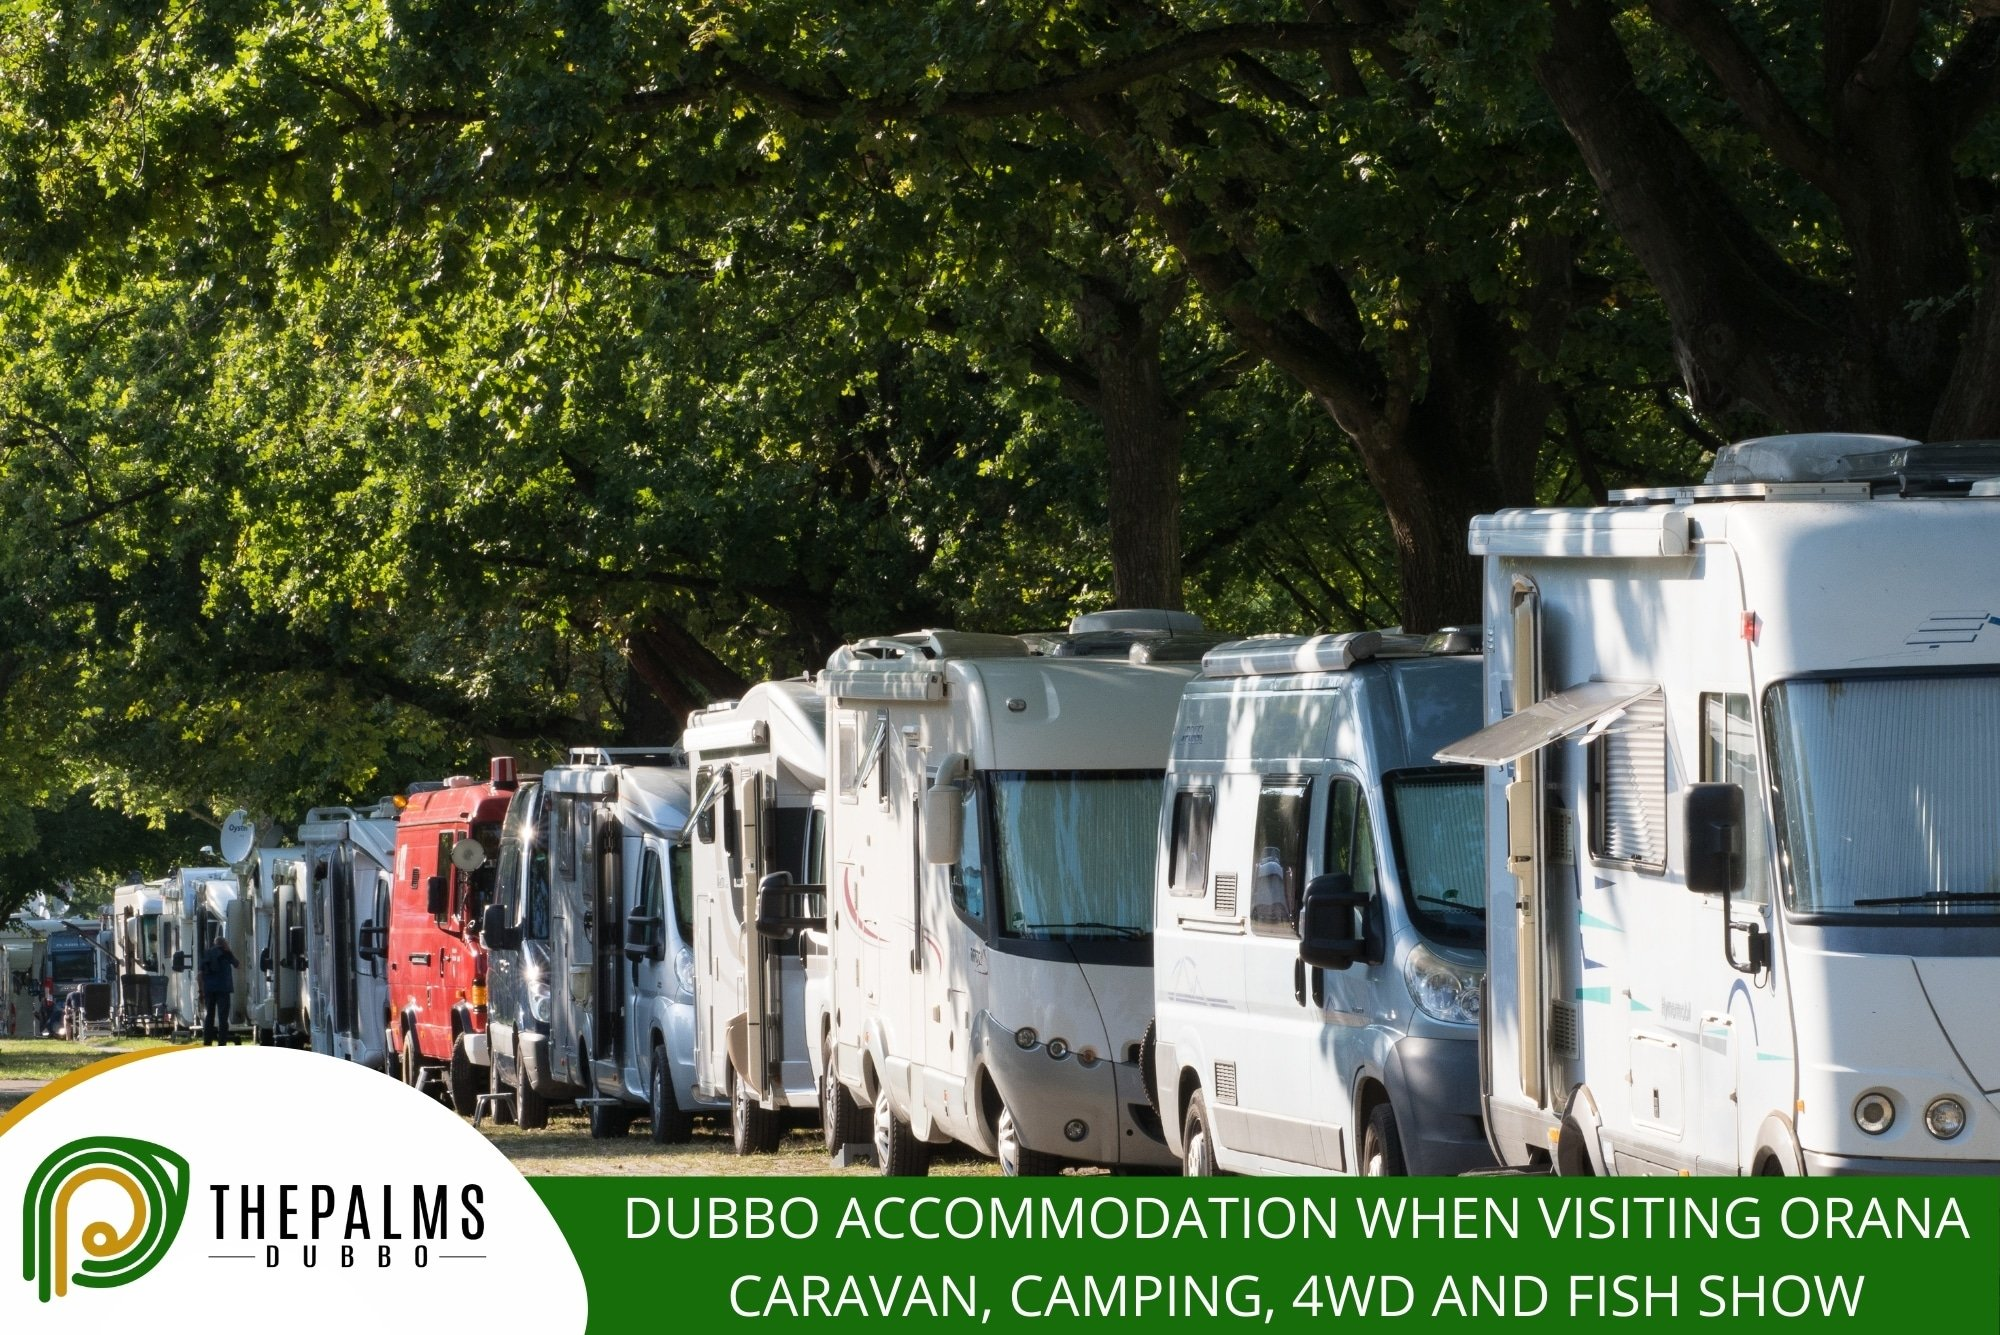 Dubbo Accommodation When Visiting Orana Caravan, Camping, 4WD And Fish Show